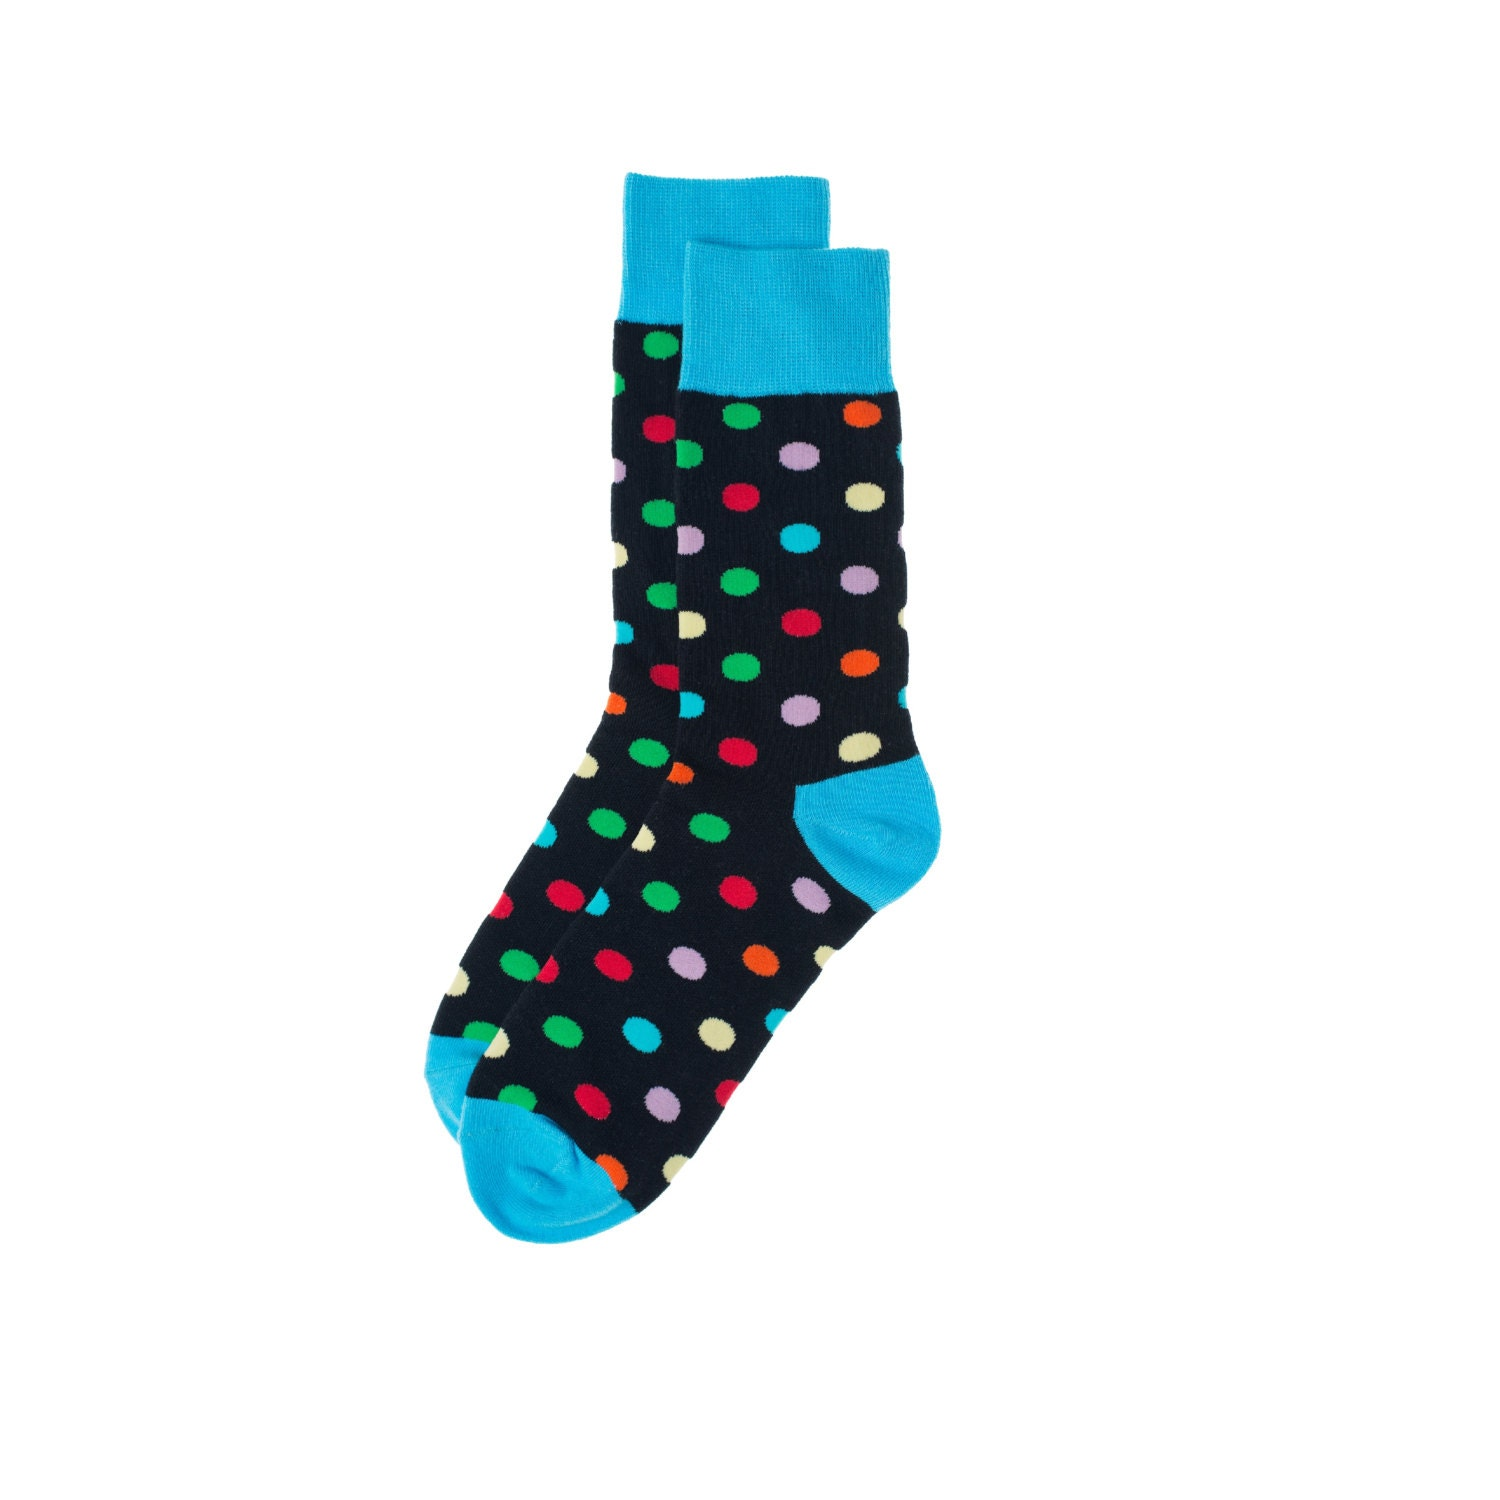 mens sock mens dress socks groomsmen socks colorful socks